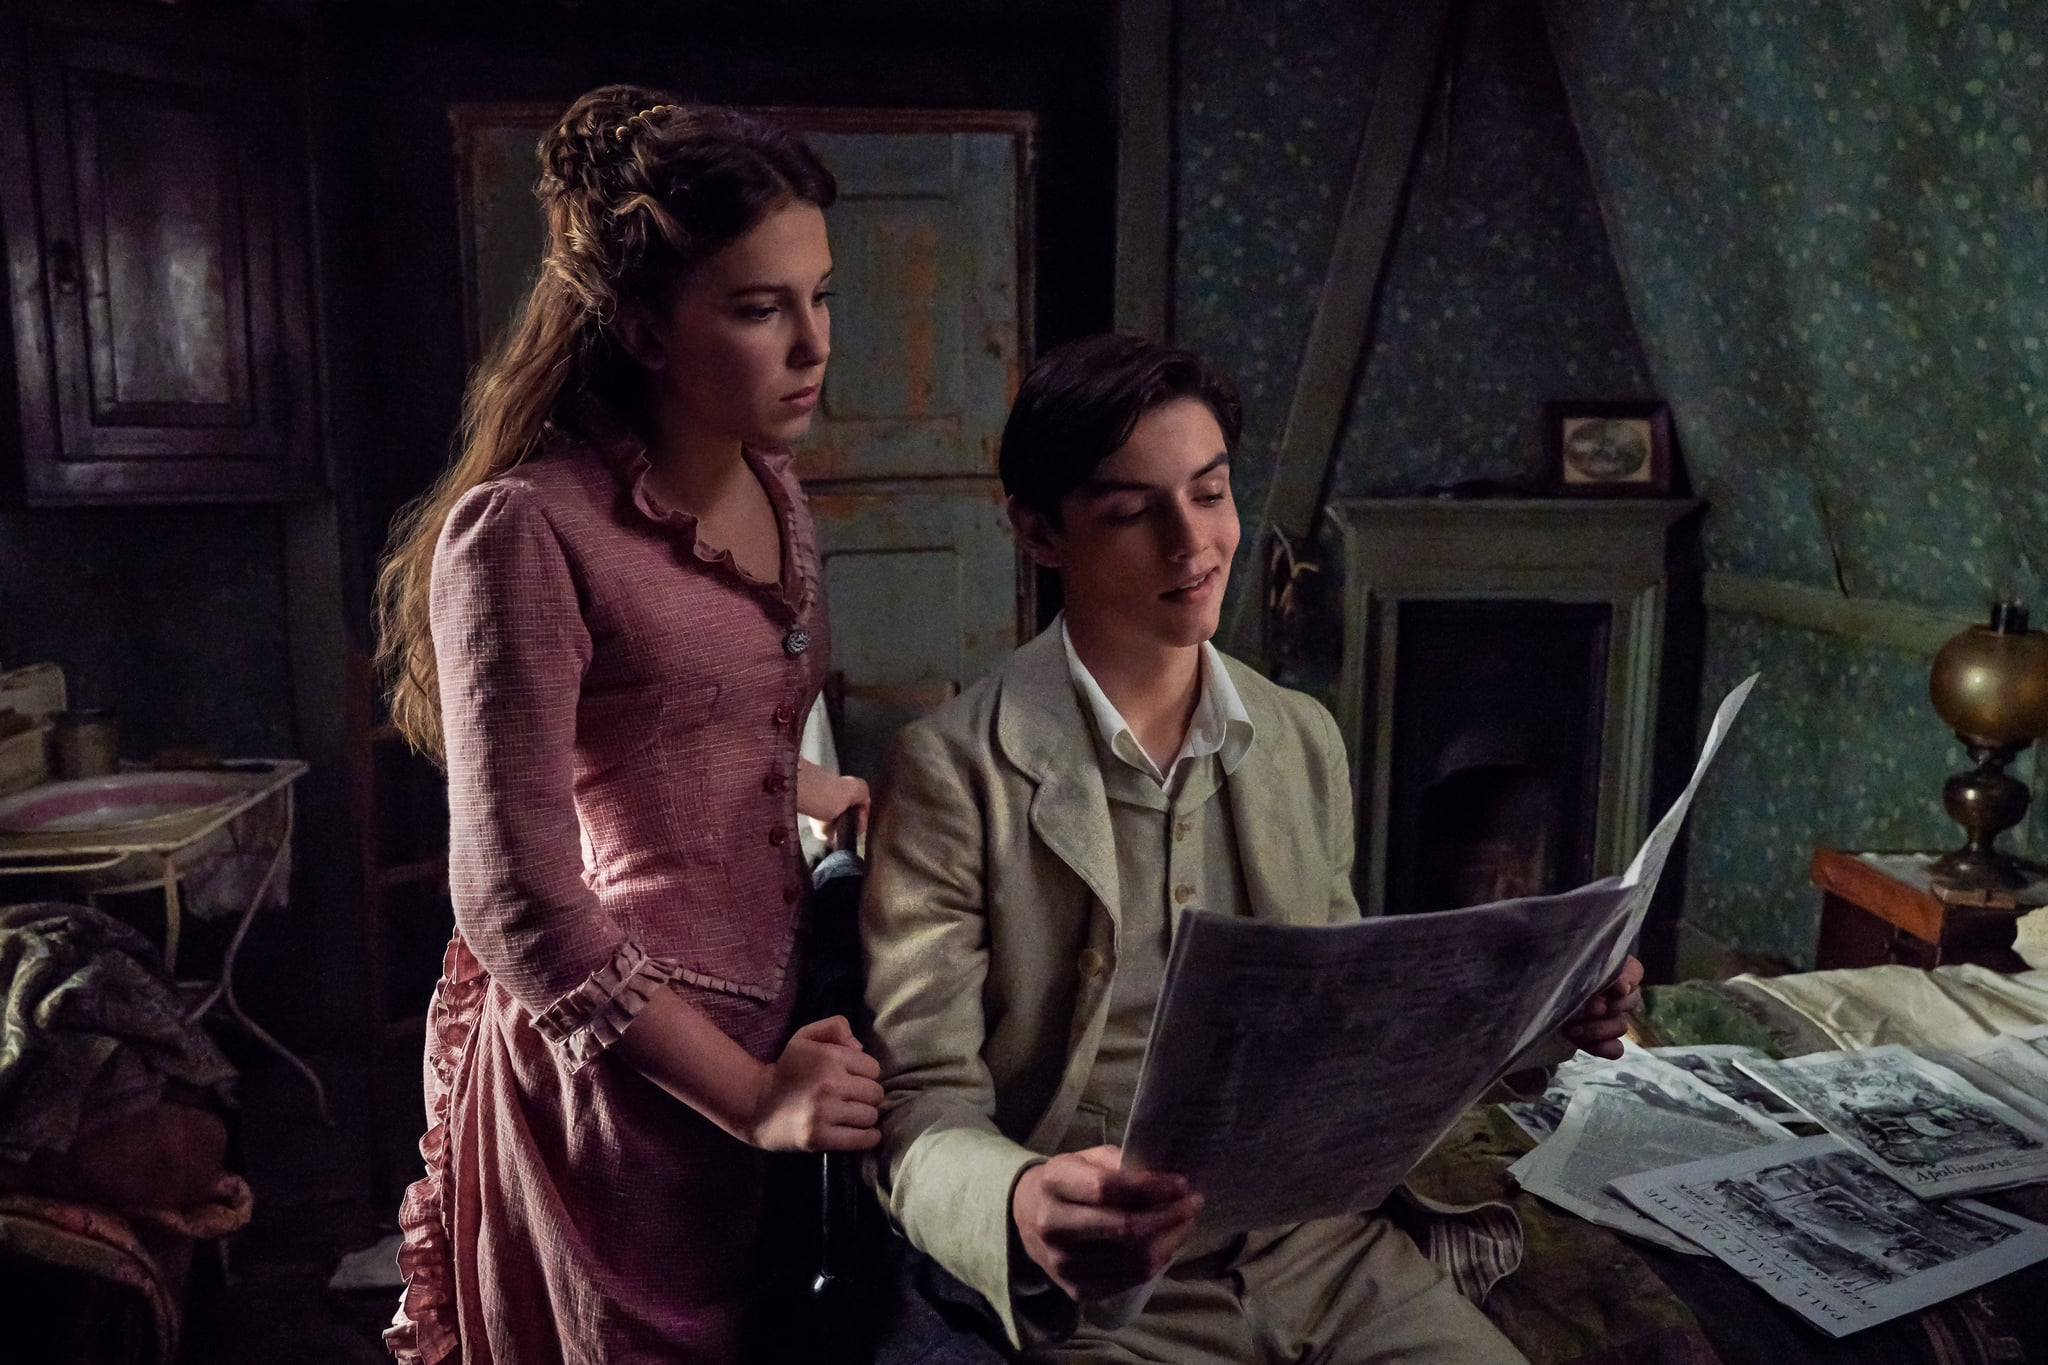 ENOLA HOLMES (L to R) MILLIE BOBBY BROWN as ENOLA HOLMES, LOUIS PARTRIDGE as TEWKSBURY. Cr. ALEX BAILEY/LEGENDARY ©2020